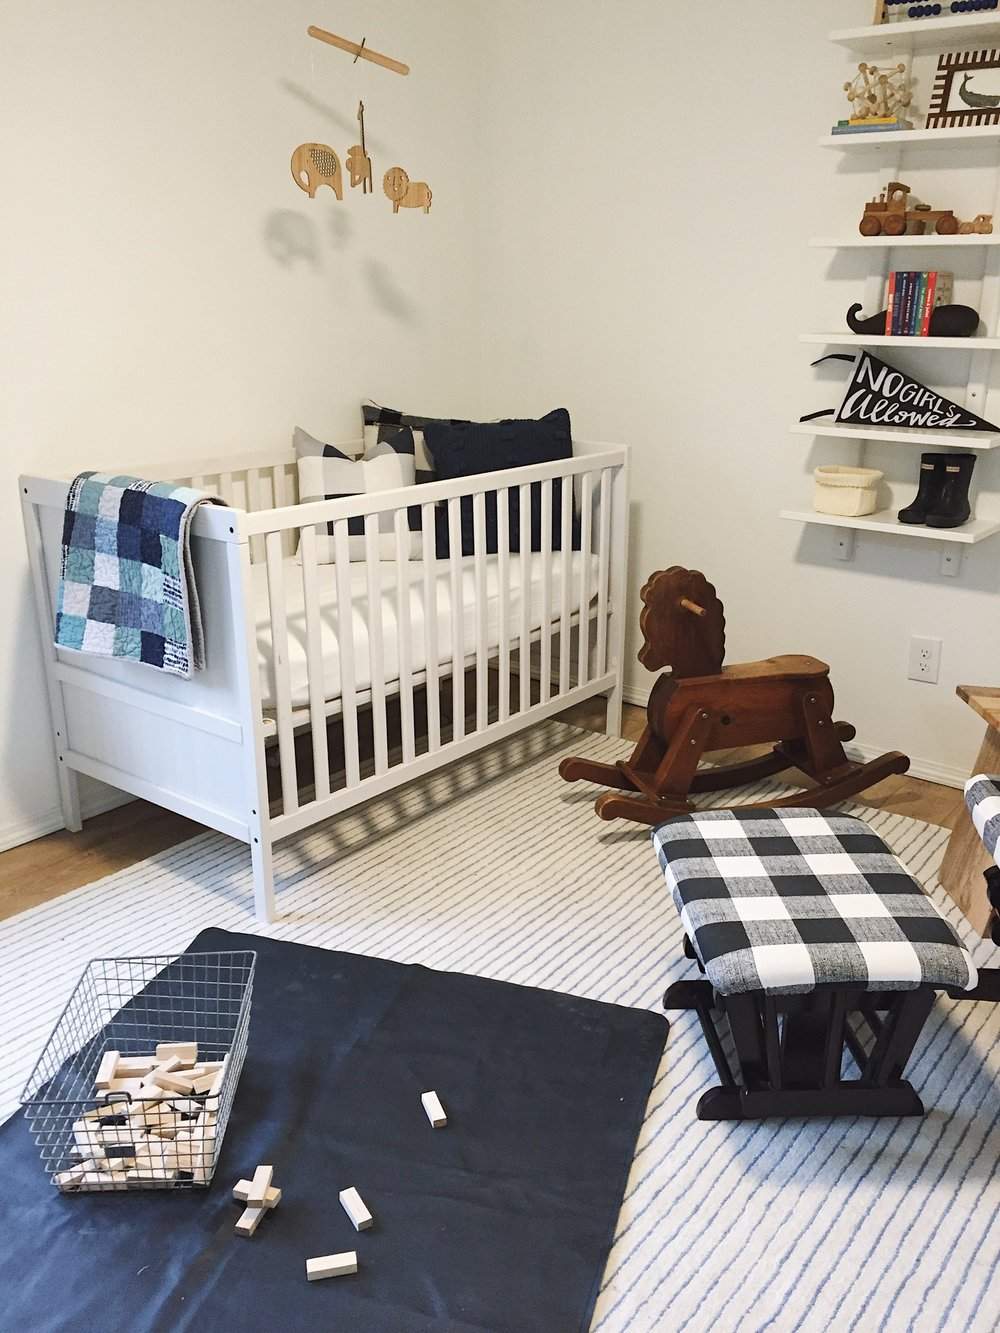 Gathre Mat, Rug (similar), Crib (similar), Light and Dwell Pillow, Rocking Horse (similar), Locker Bin, Shelf (similar)